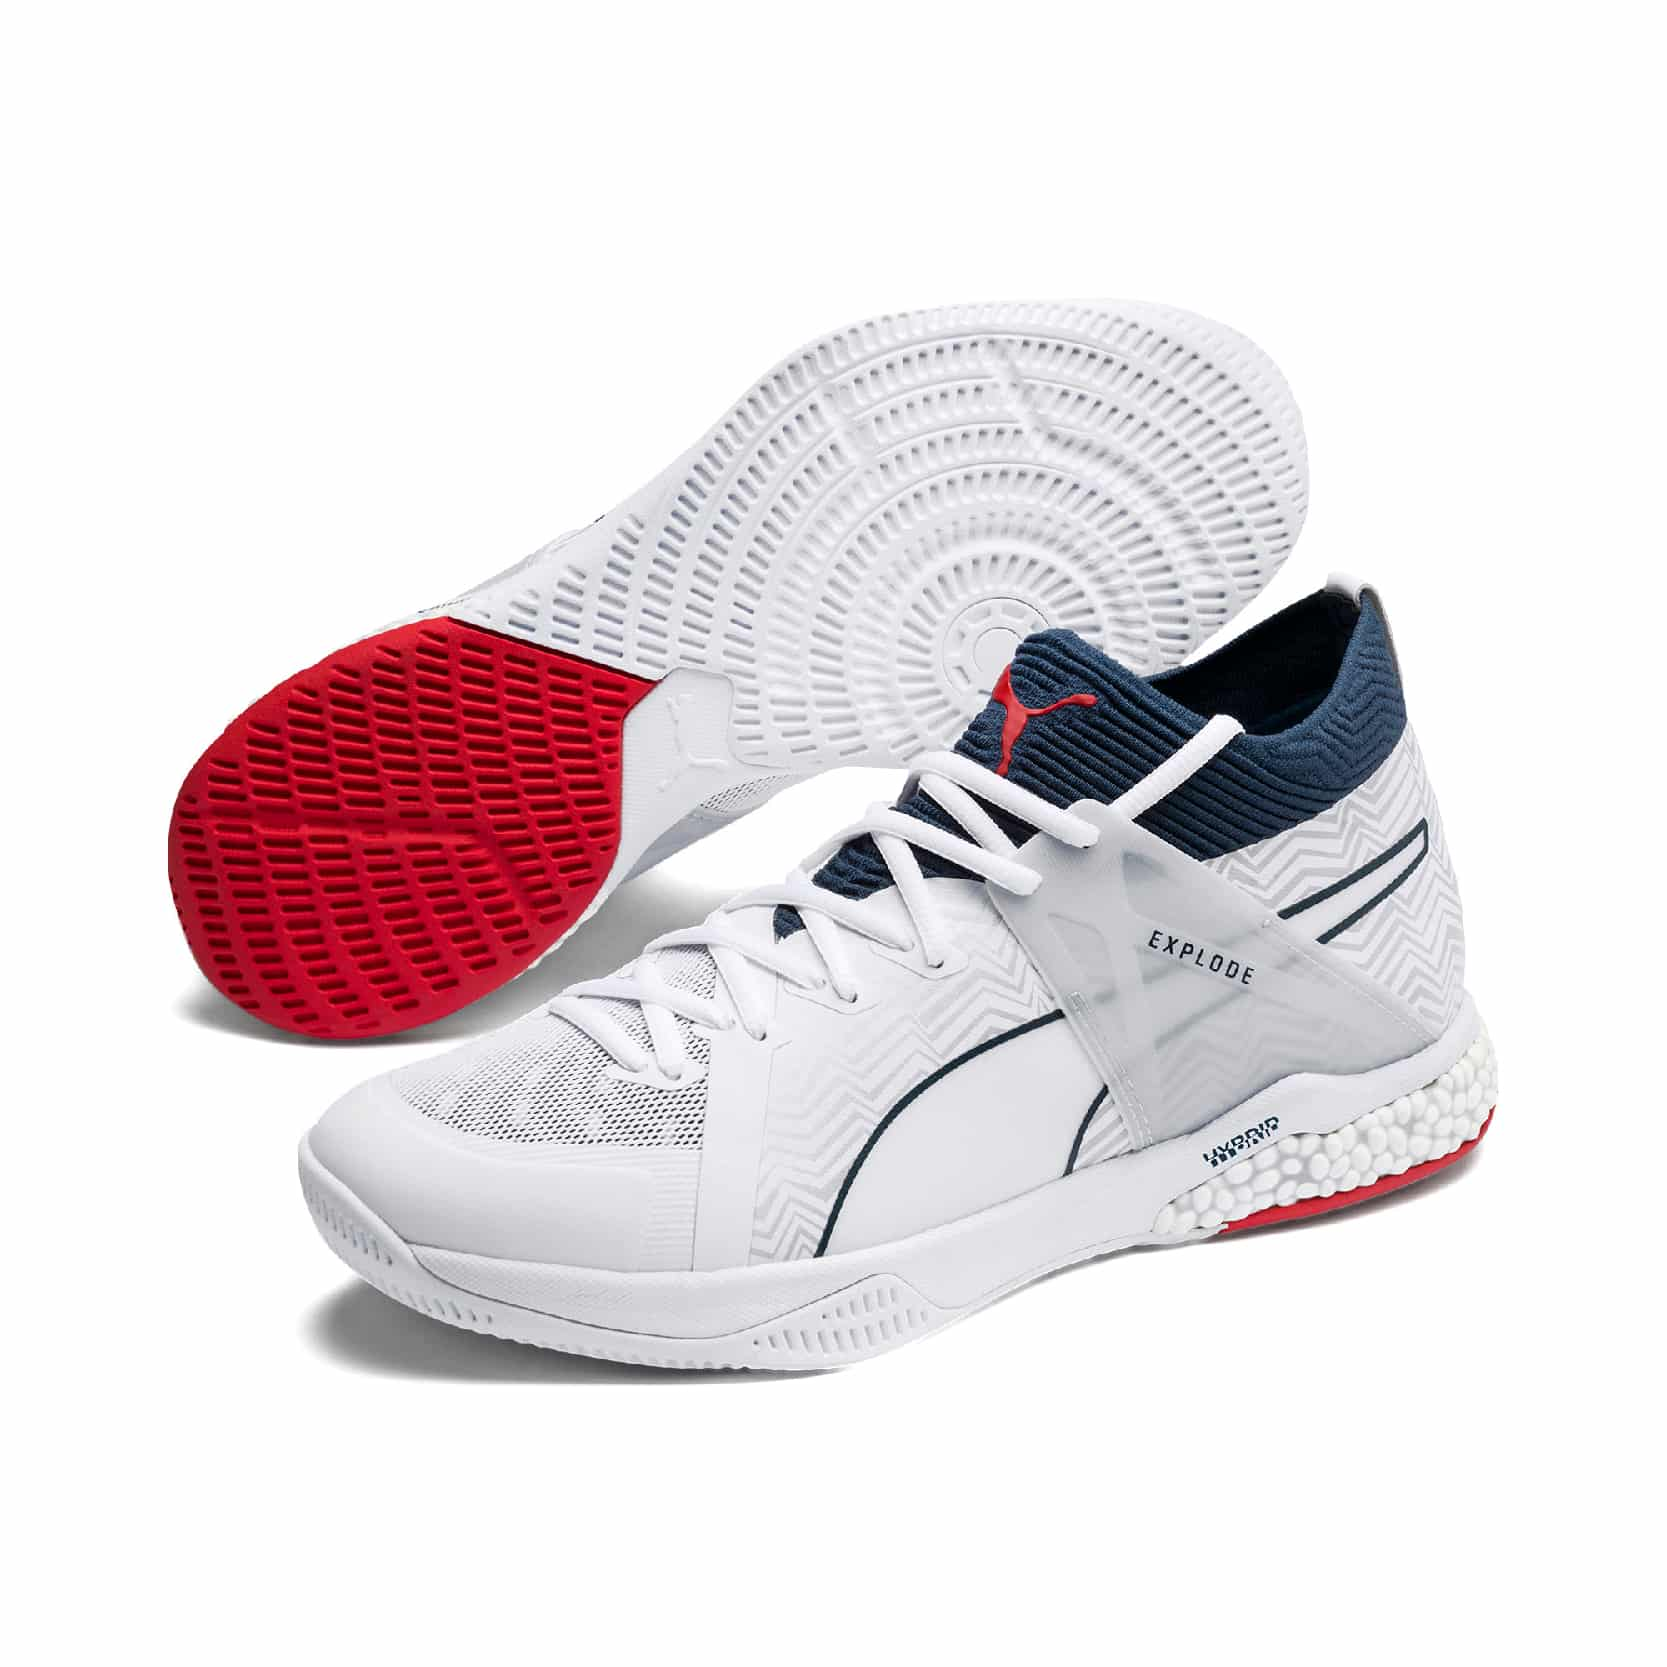 puma-explode-eh-1-chaussures-hand-2020-7